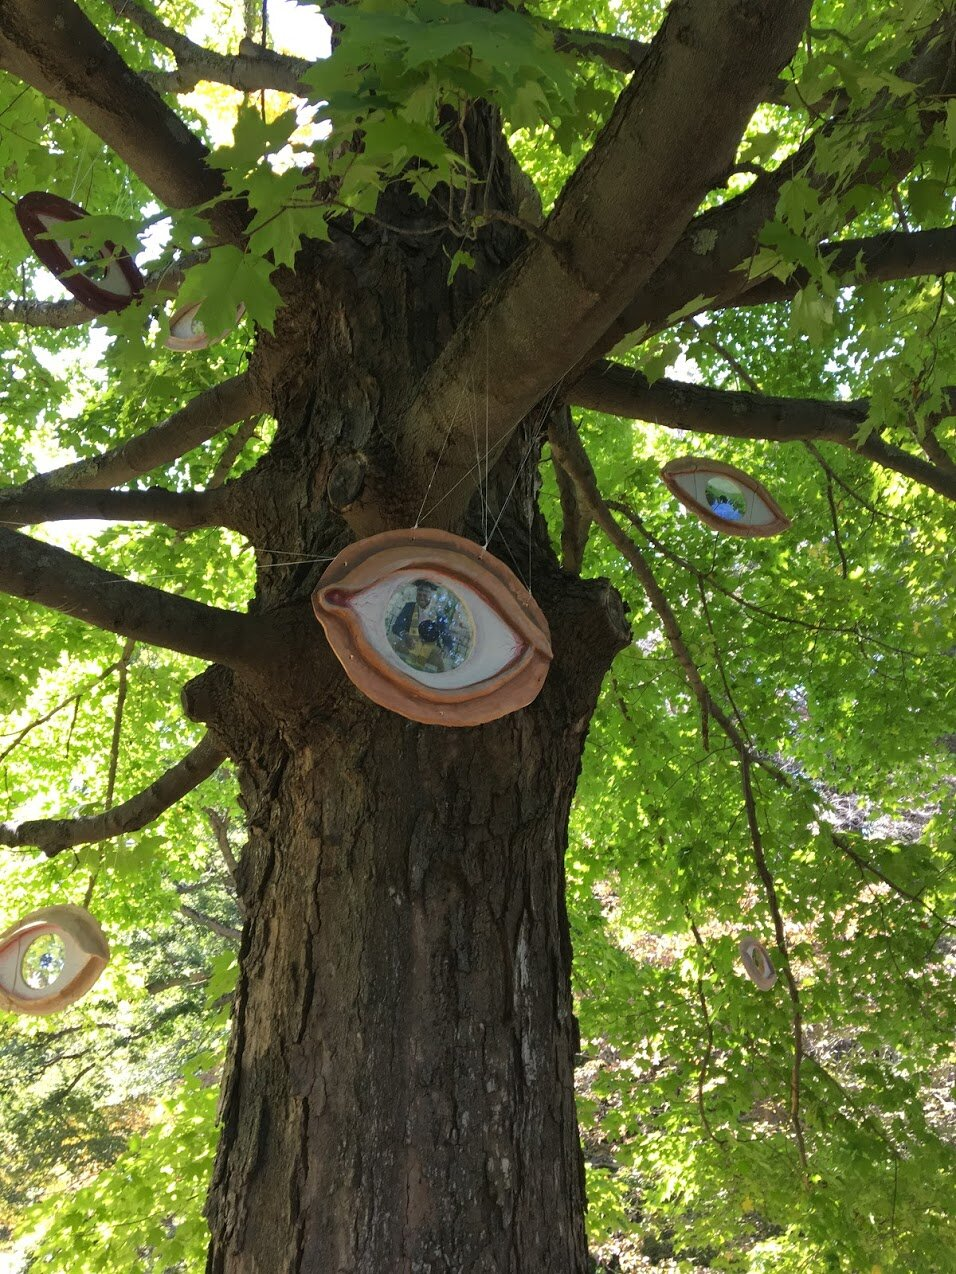 maudslay-state-park-sculpture-eyes-in-trees.JPG